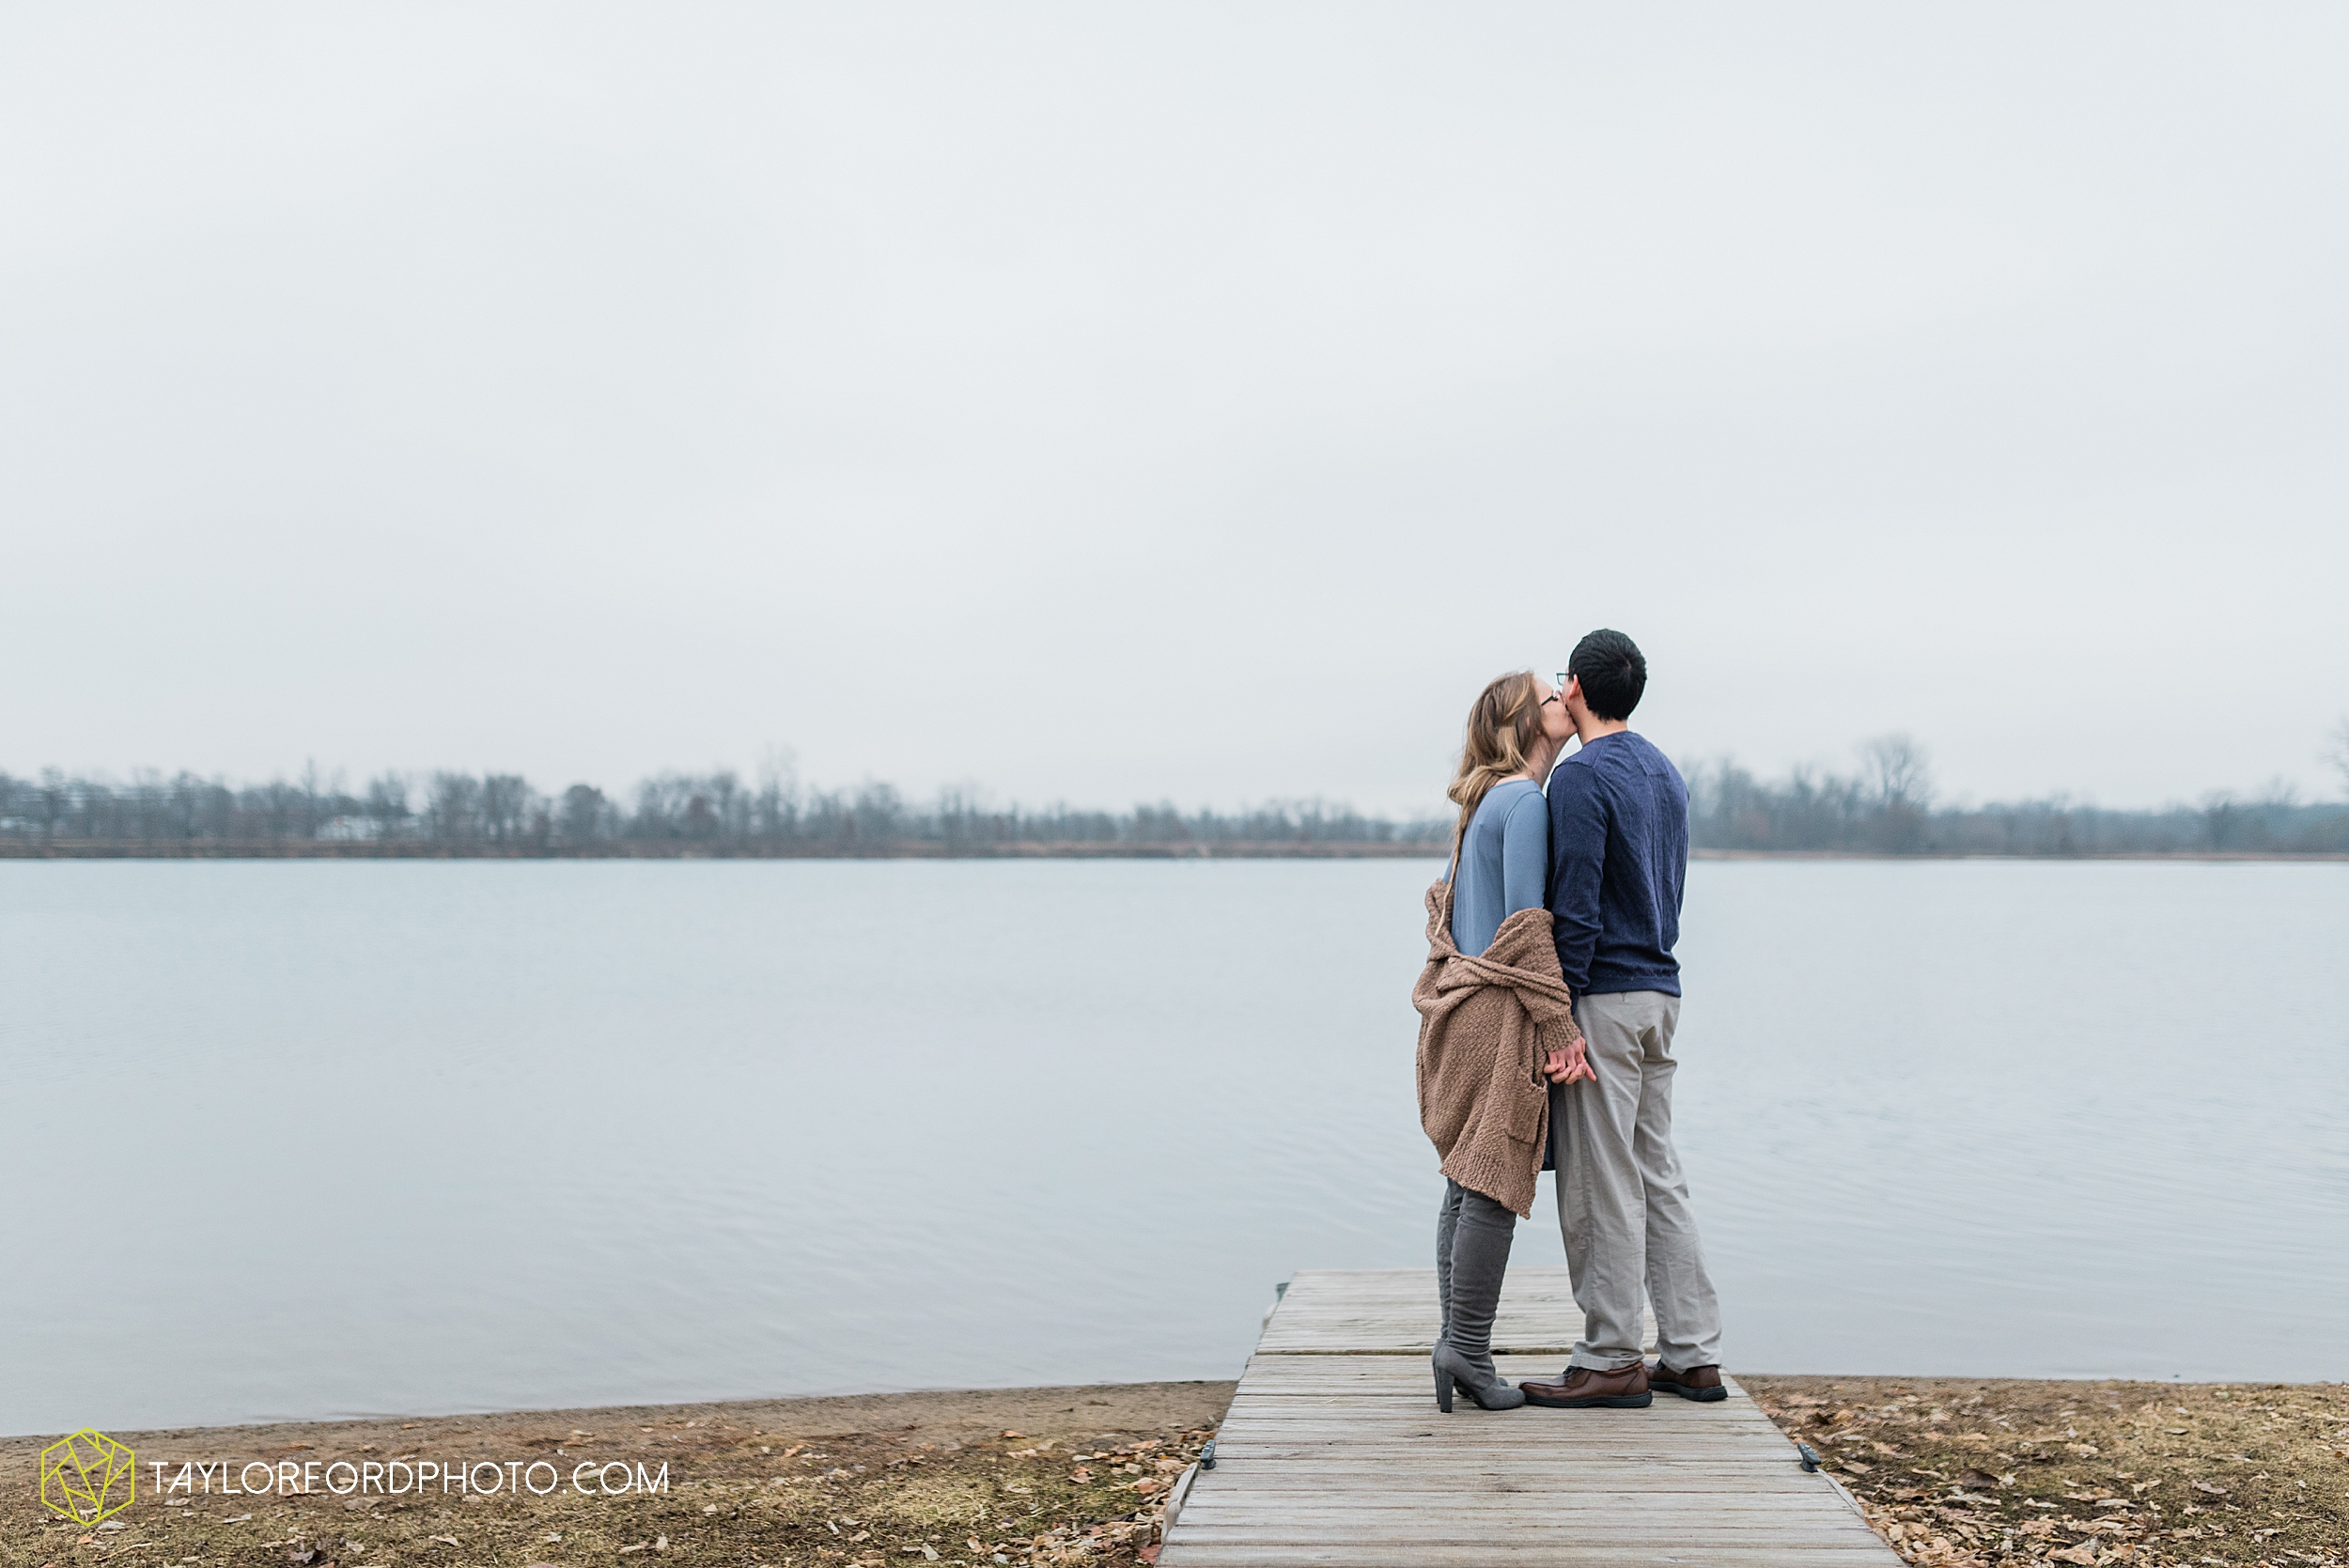 at-home-fidler-pond-park-downtown-goshen-indiana-engagement-photography-taylor-ford-hirschy-photographer_2000.jpg